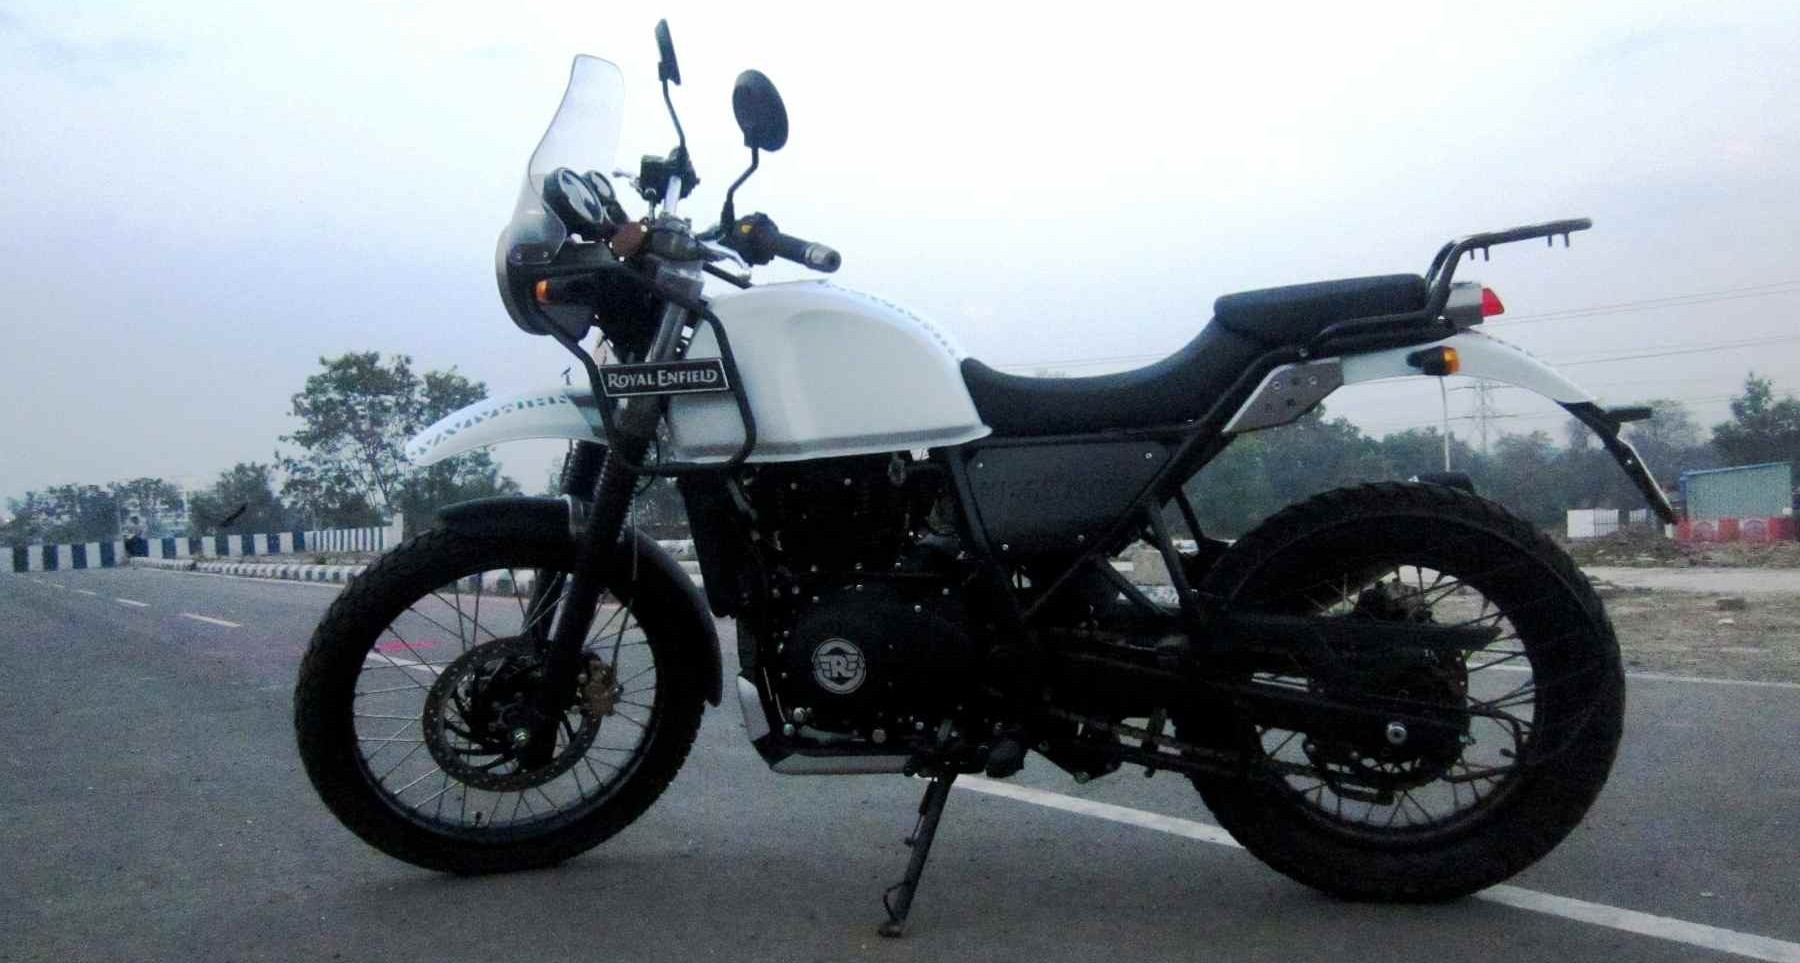 royal enfield himalayan review detailed image gallery inside southern torque masters. Black Bedroom Furniture Sets. Home Design Ideas